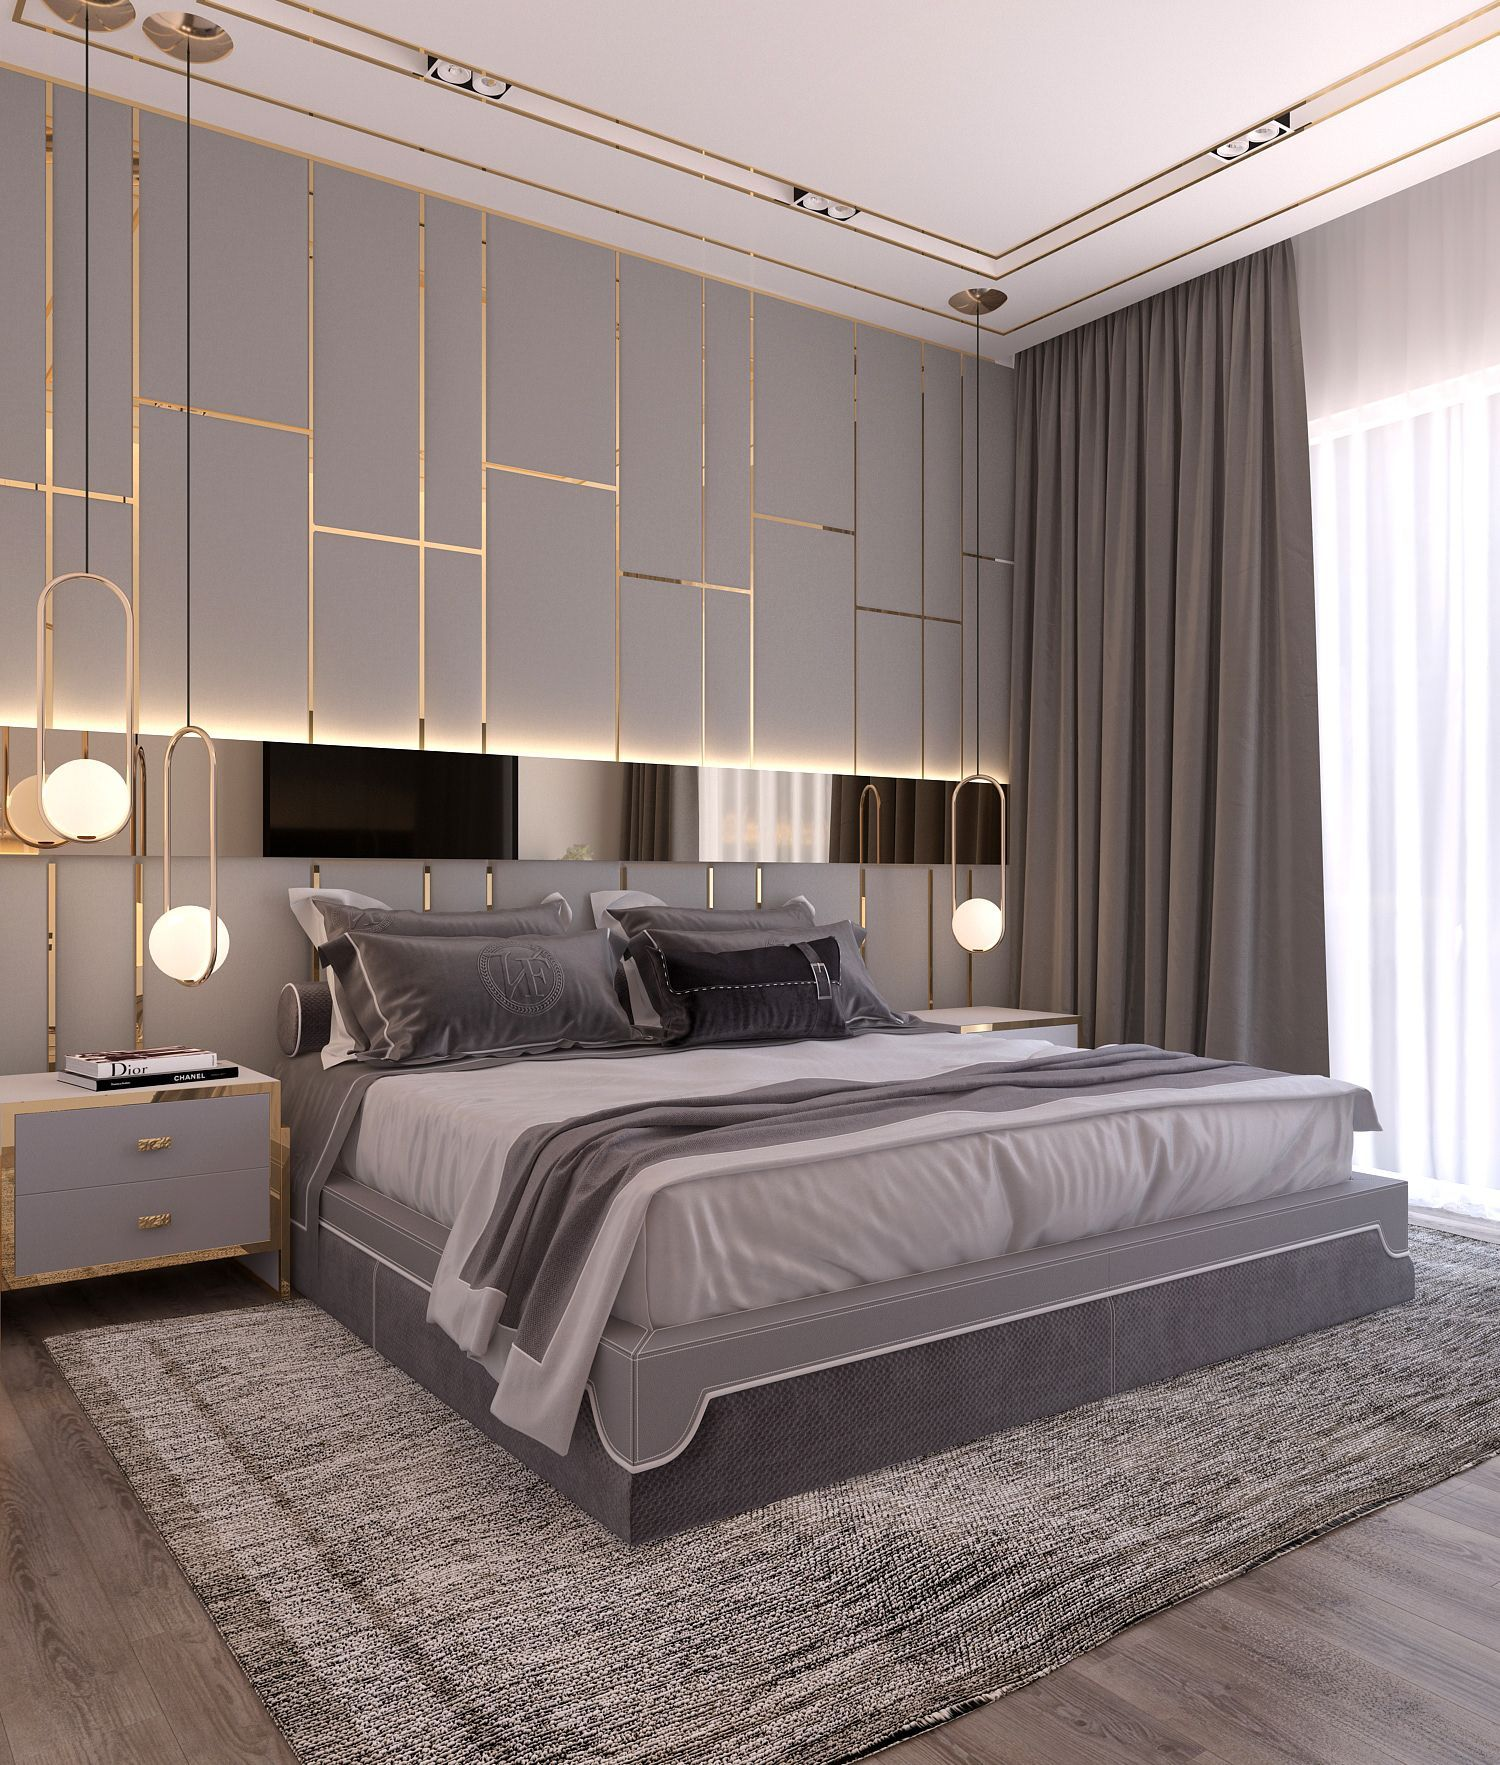 Modern Style Bedroom Dubai Project On Behance Bedrooms In